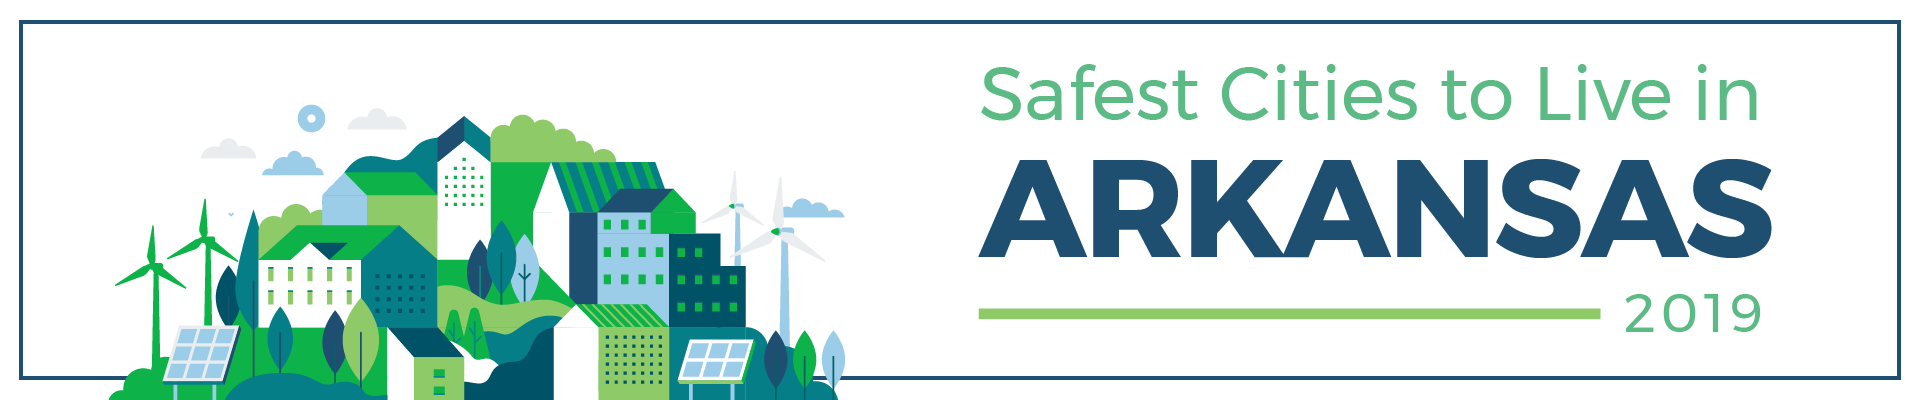 header - safest_cities_arkansas_2019